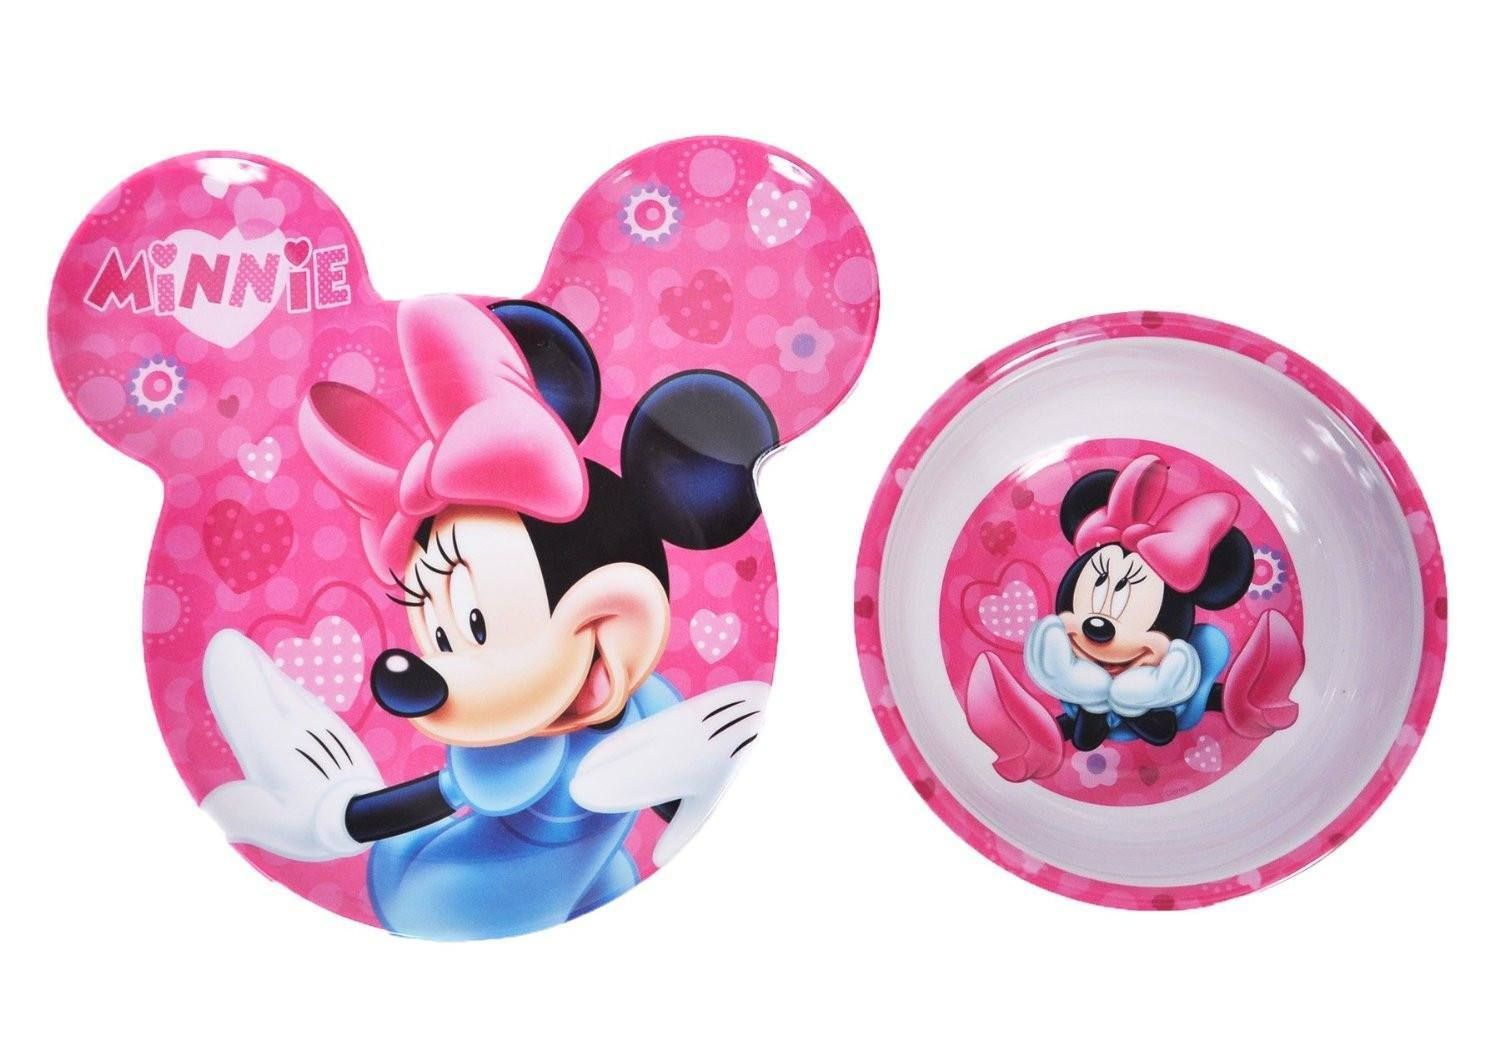 Minnie Mouse Cereal Bowl and Plate Set Break Resistant BPA-Free 2 Pack Dishes  sc 1 st  Pinterest & Mickey Mouse Cereal Bowl and Plate Set | Mickey \u0026 Minnie Mouse ...